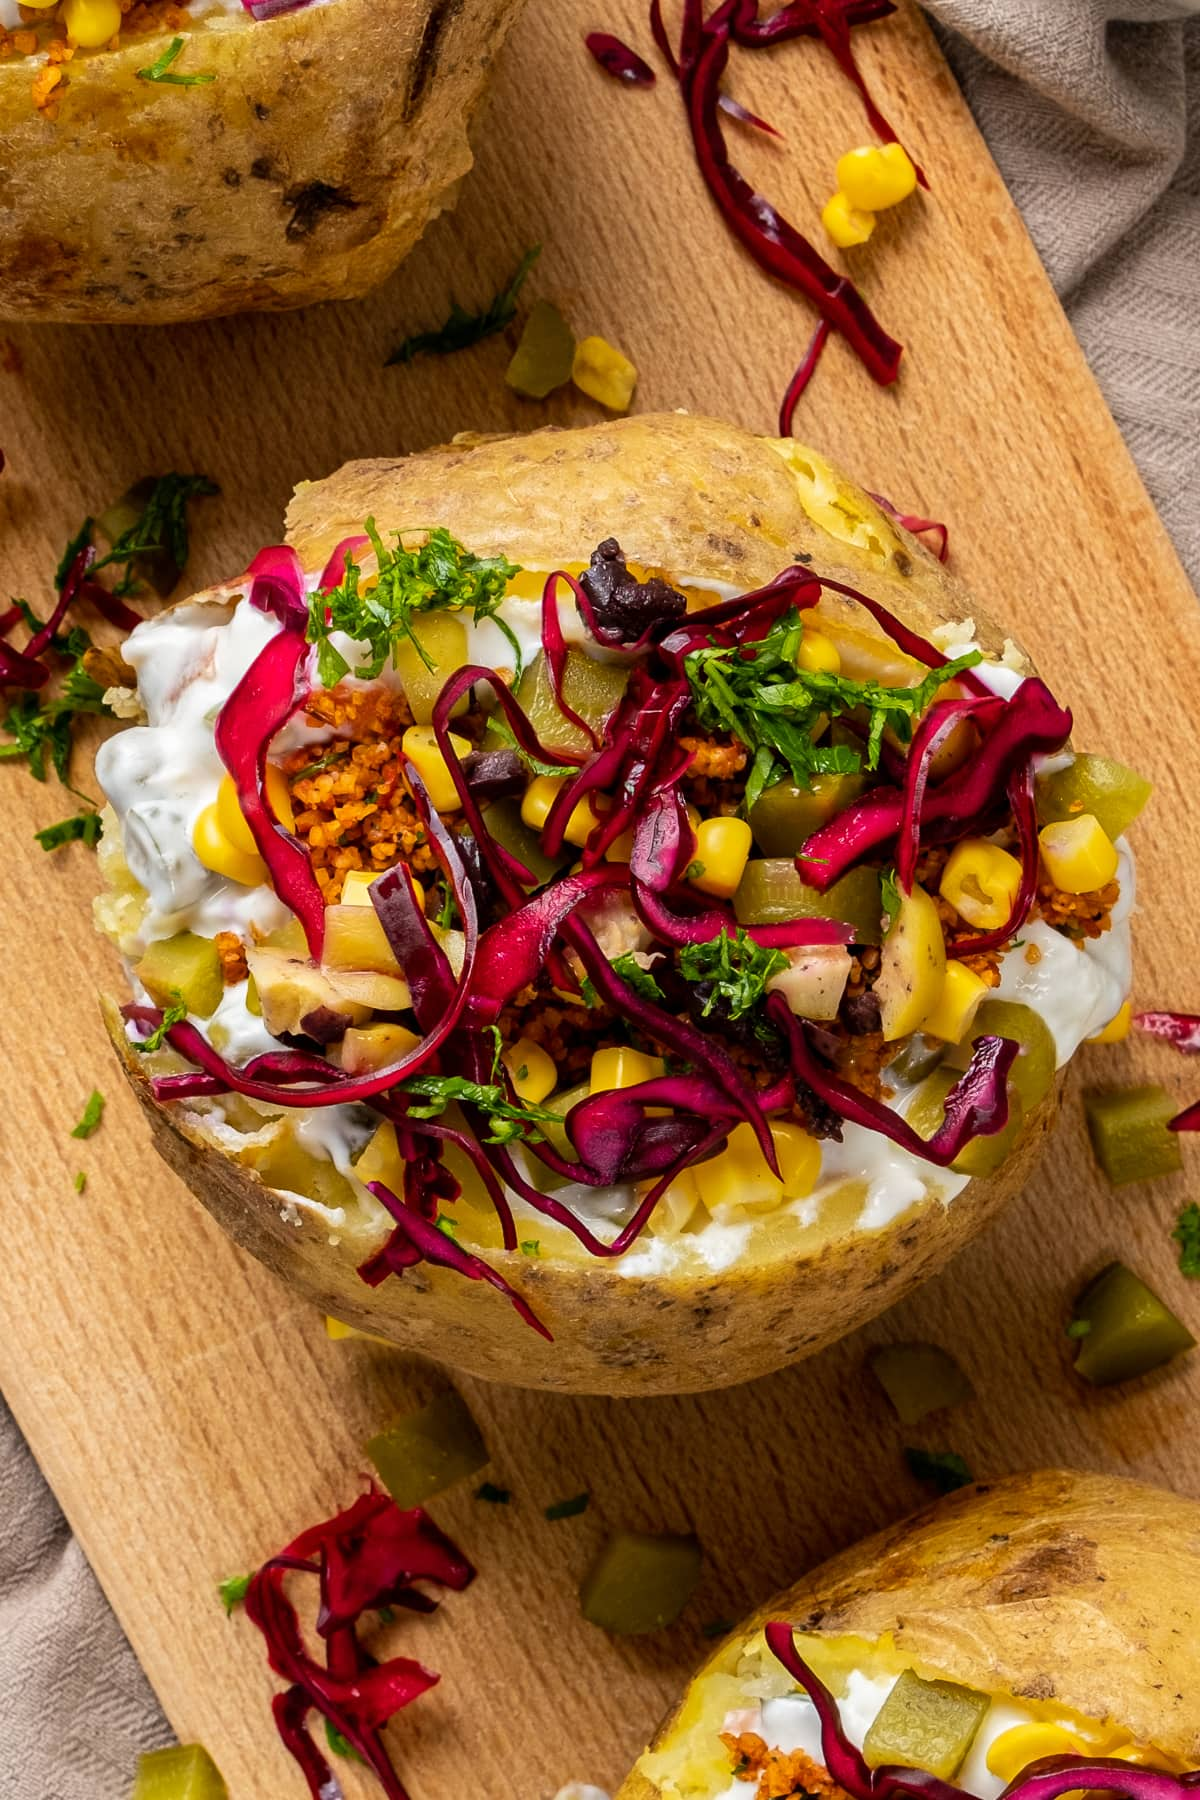 Kumpir loaded with bulgur salad kisir, corn, olives, dill pickles and red cabbage on a wooden board.